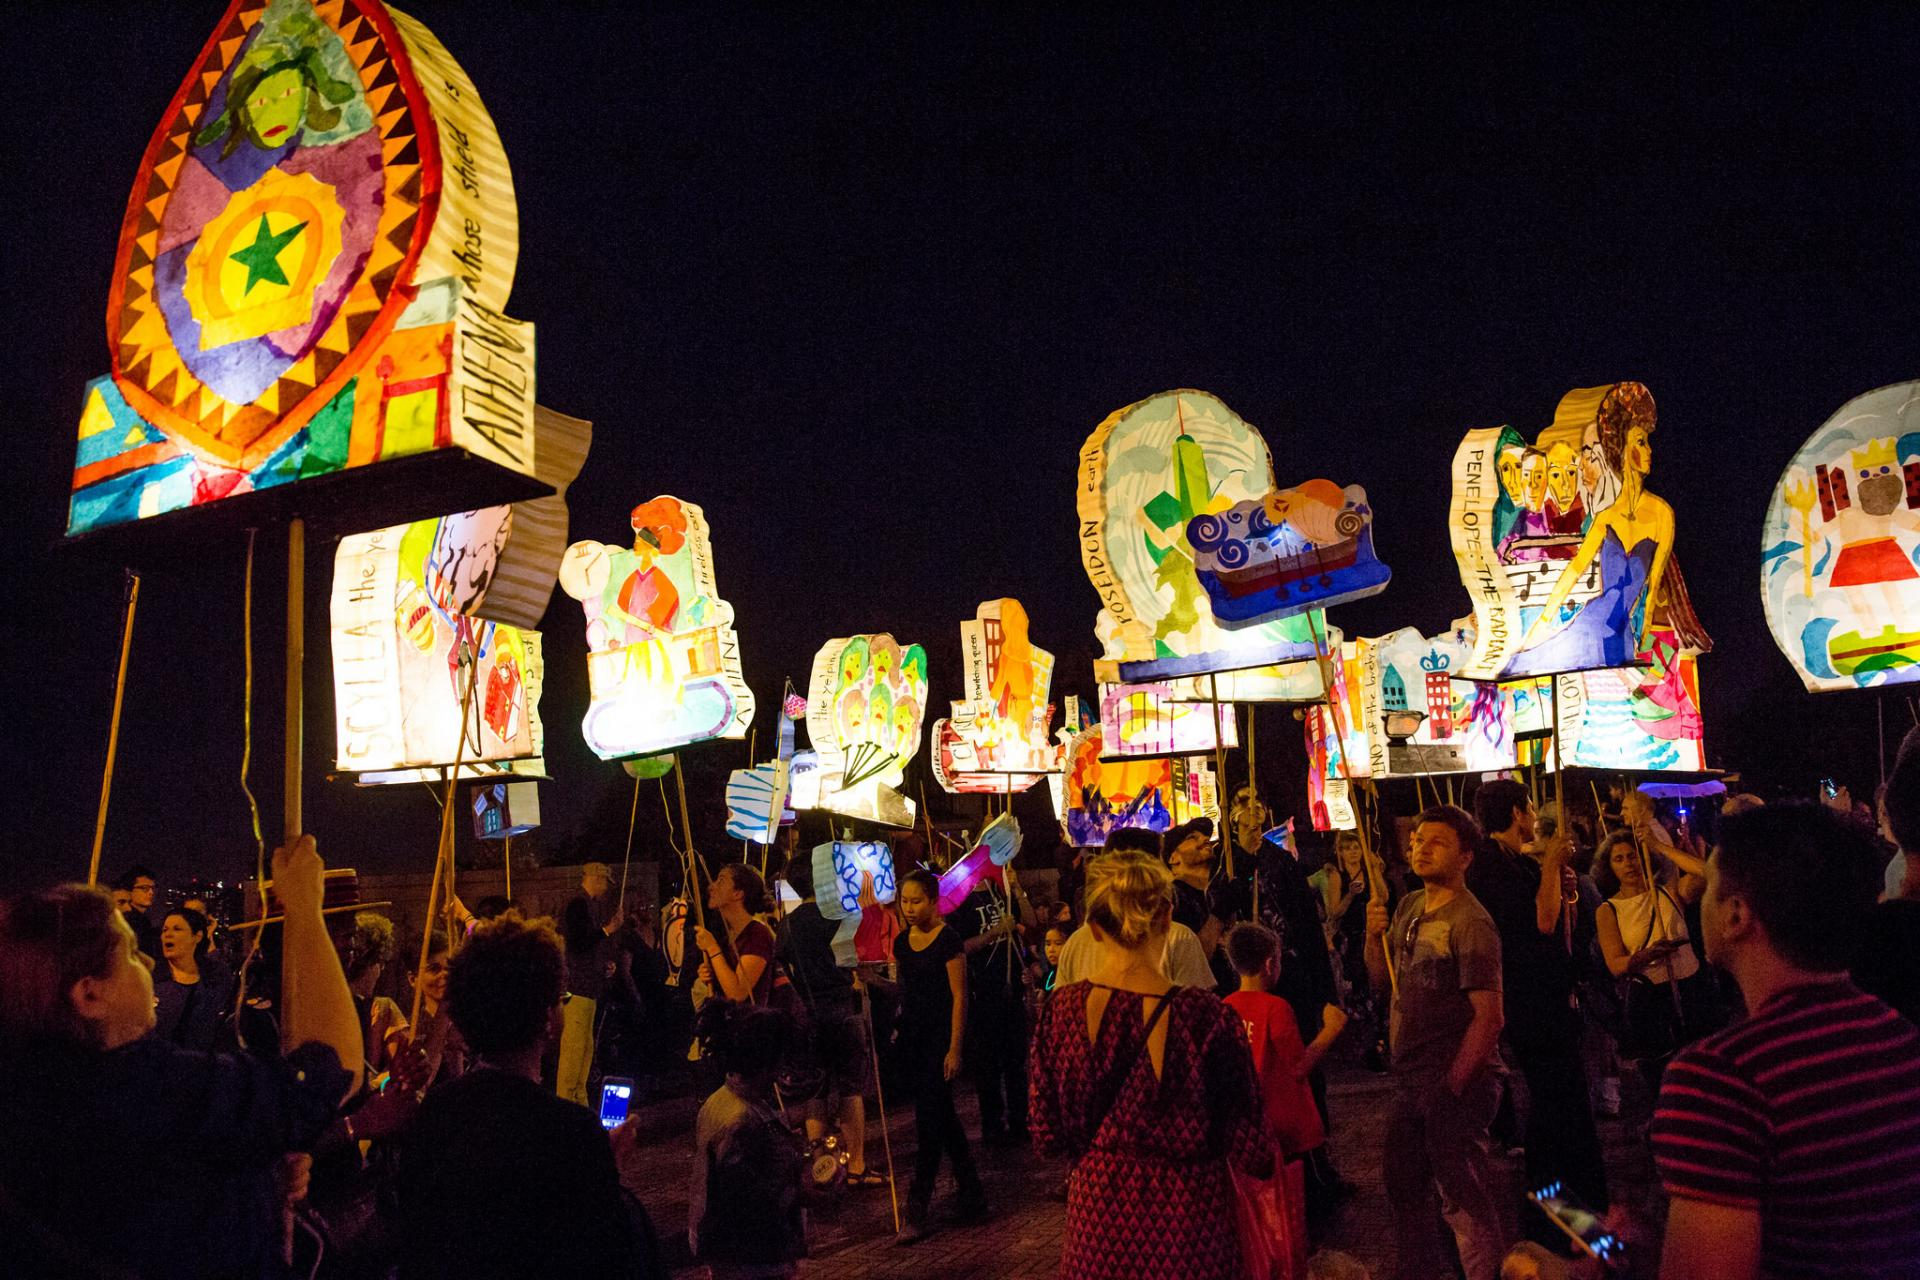 Colorful lanterns illuminate the night sky during Morningside Lights, an annual art workshop and community parade.